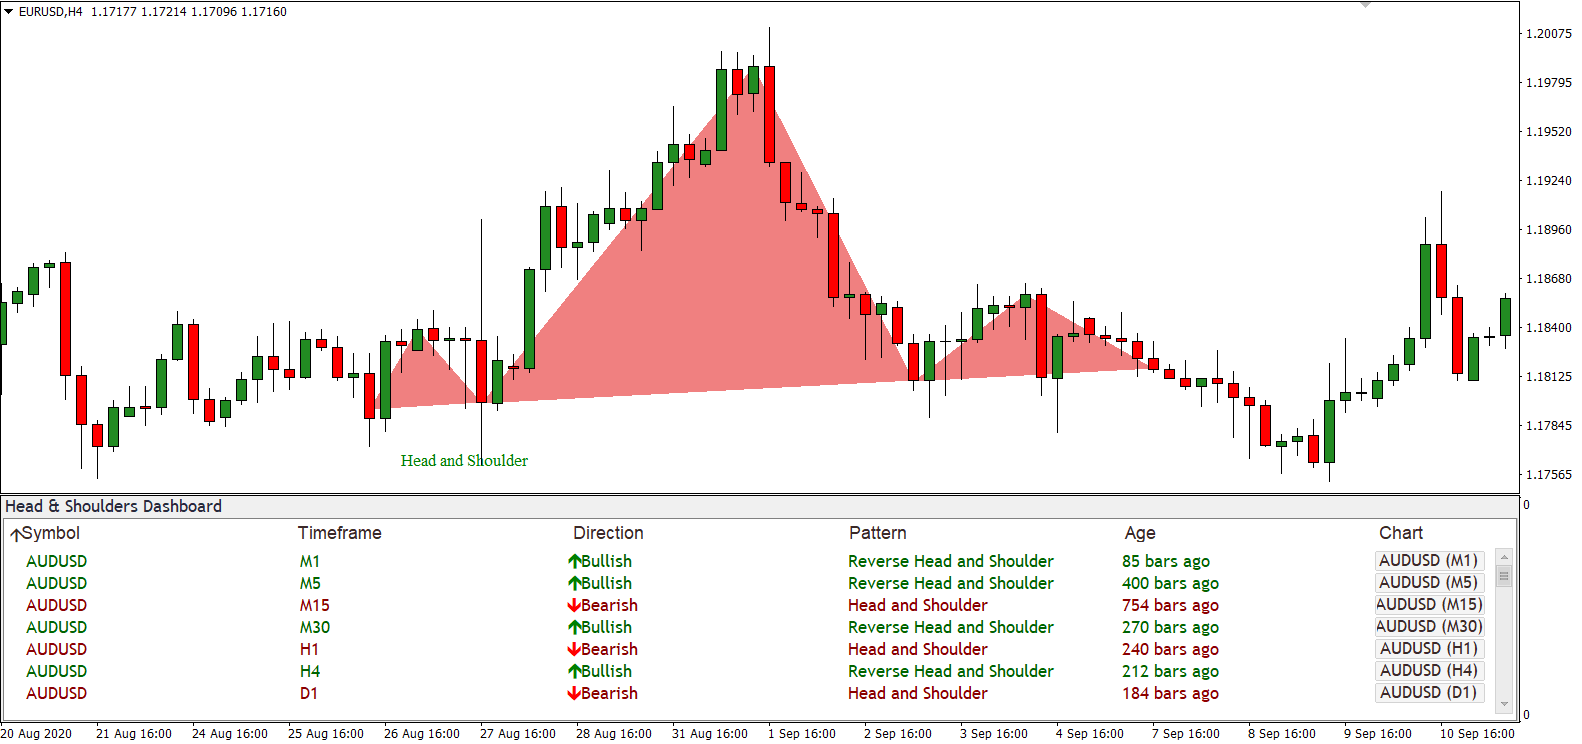 Head & Shoulders Dashboard - an Algorithm for Finding a Classic Reversal Pattern preview